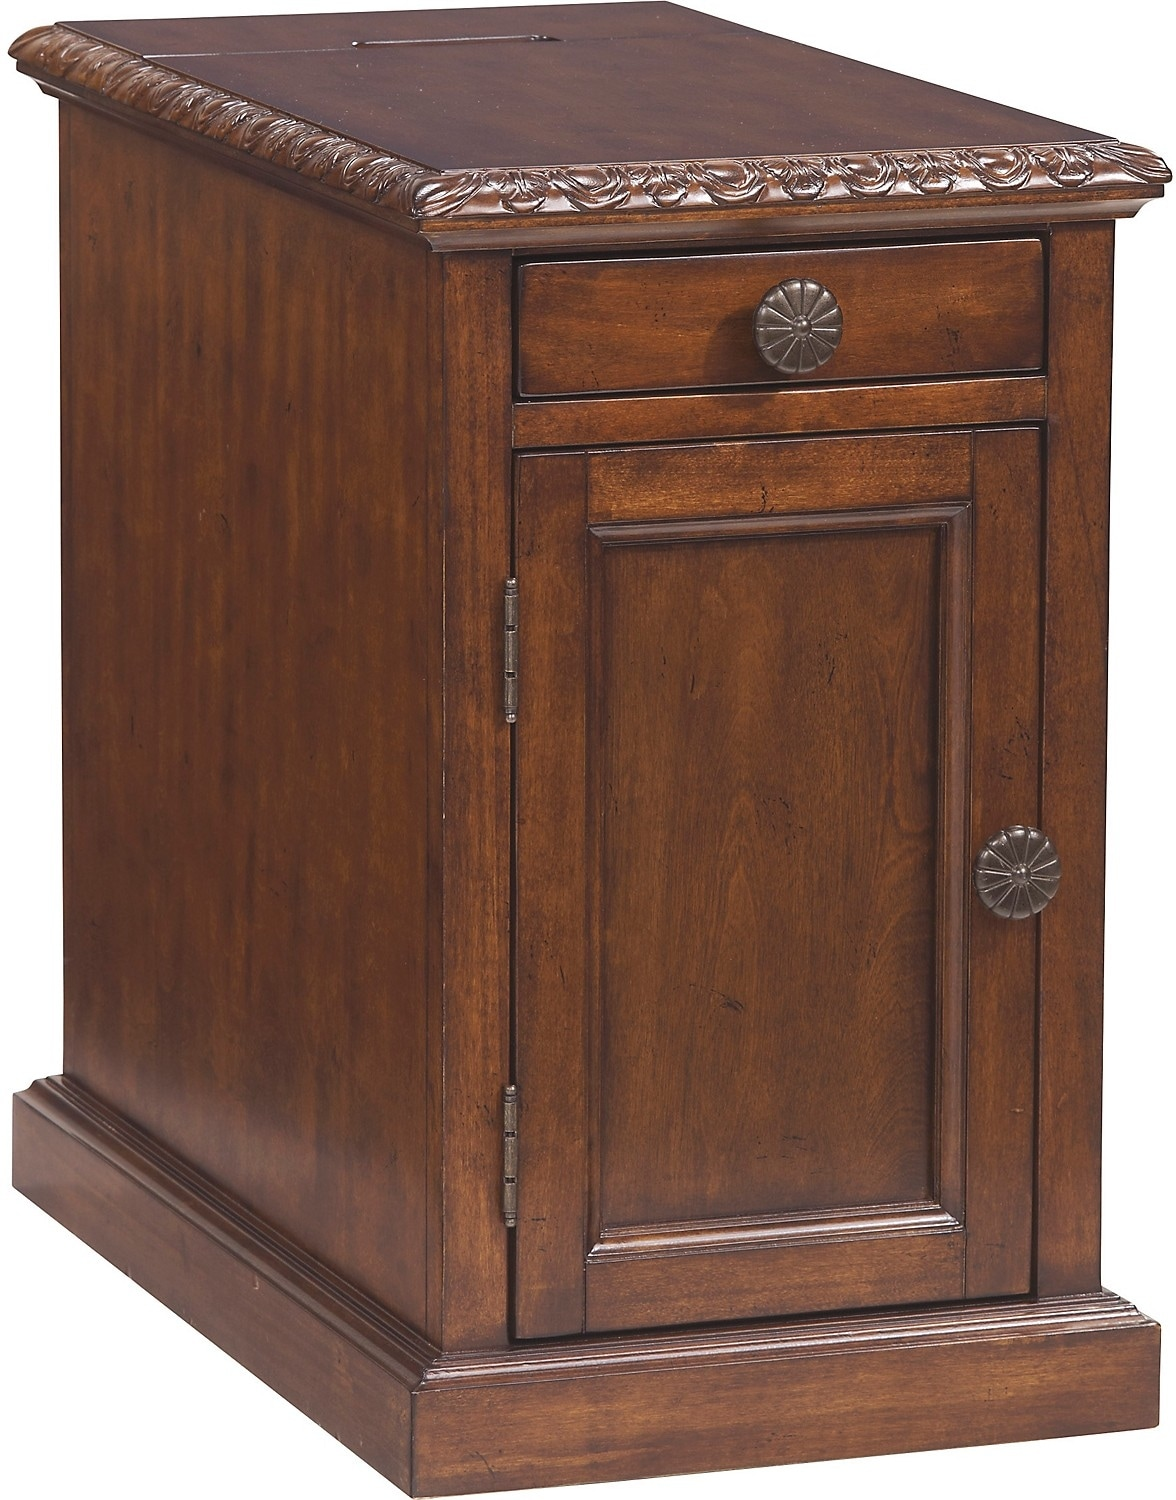 Accent and Occasional Furniture - Coventry Accent Table – Ornate Brown